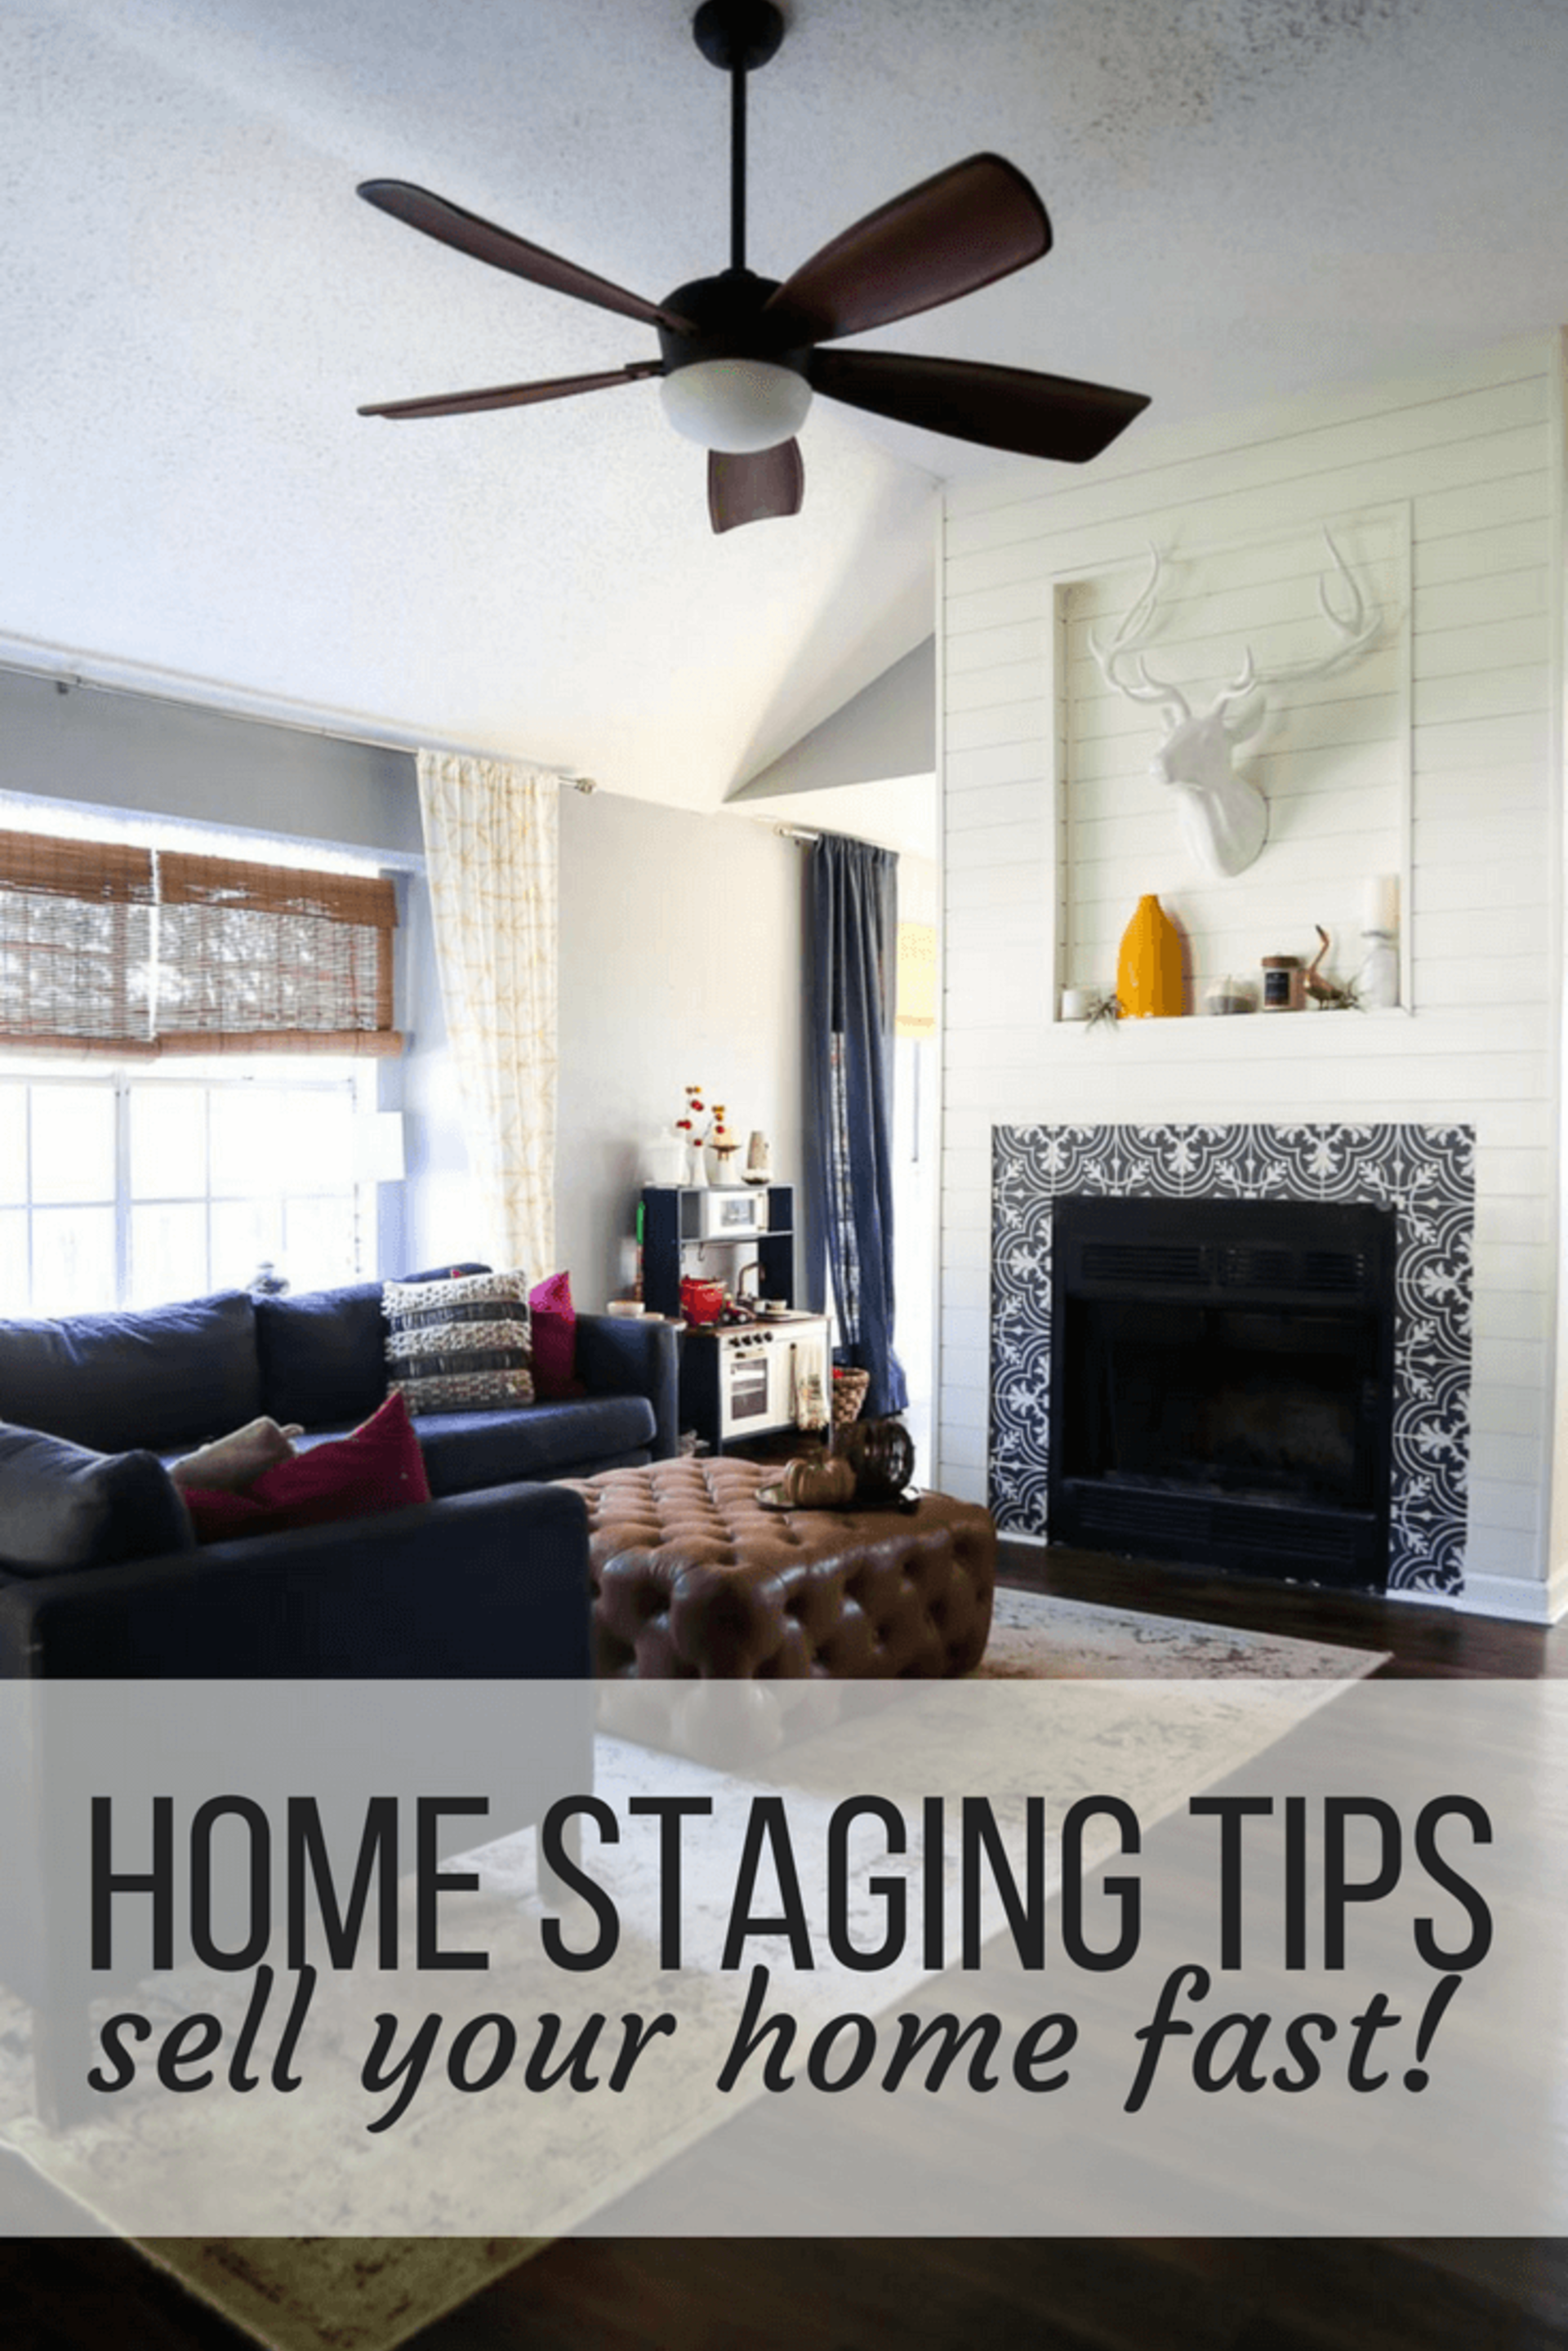 The Staging Guide Checklist Ready, set, stage!